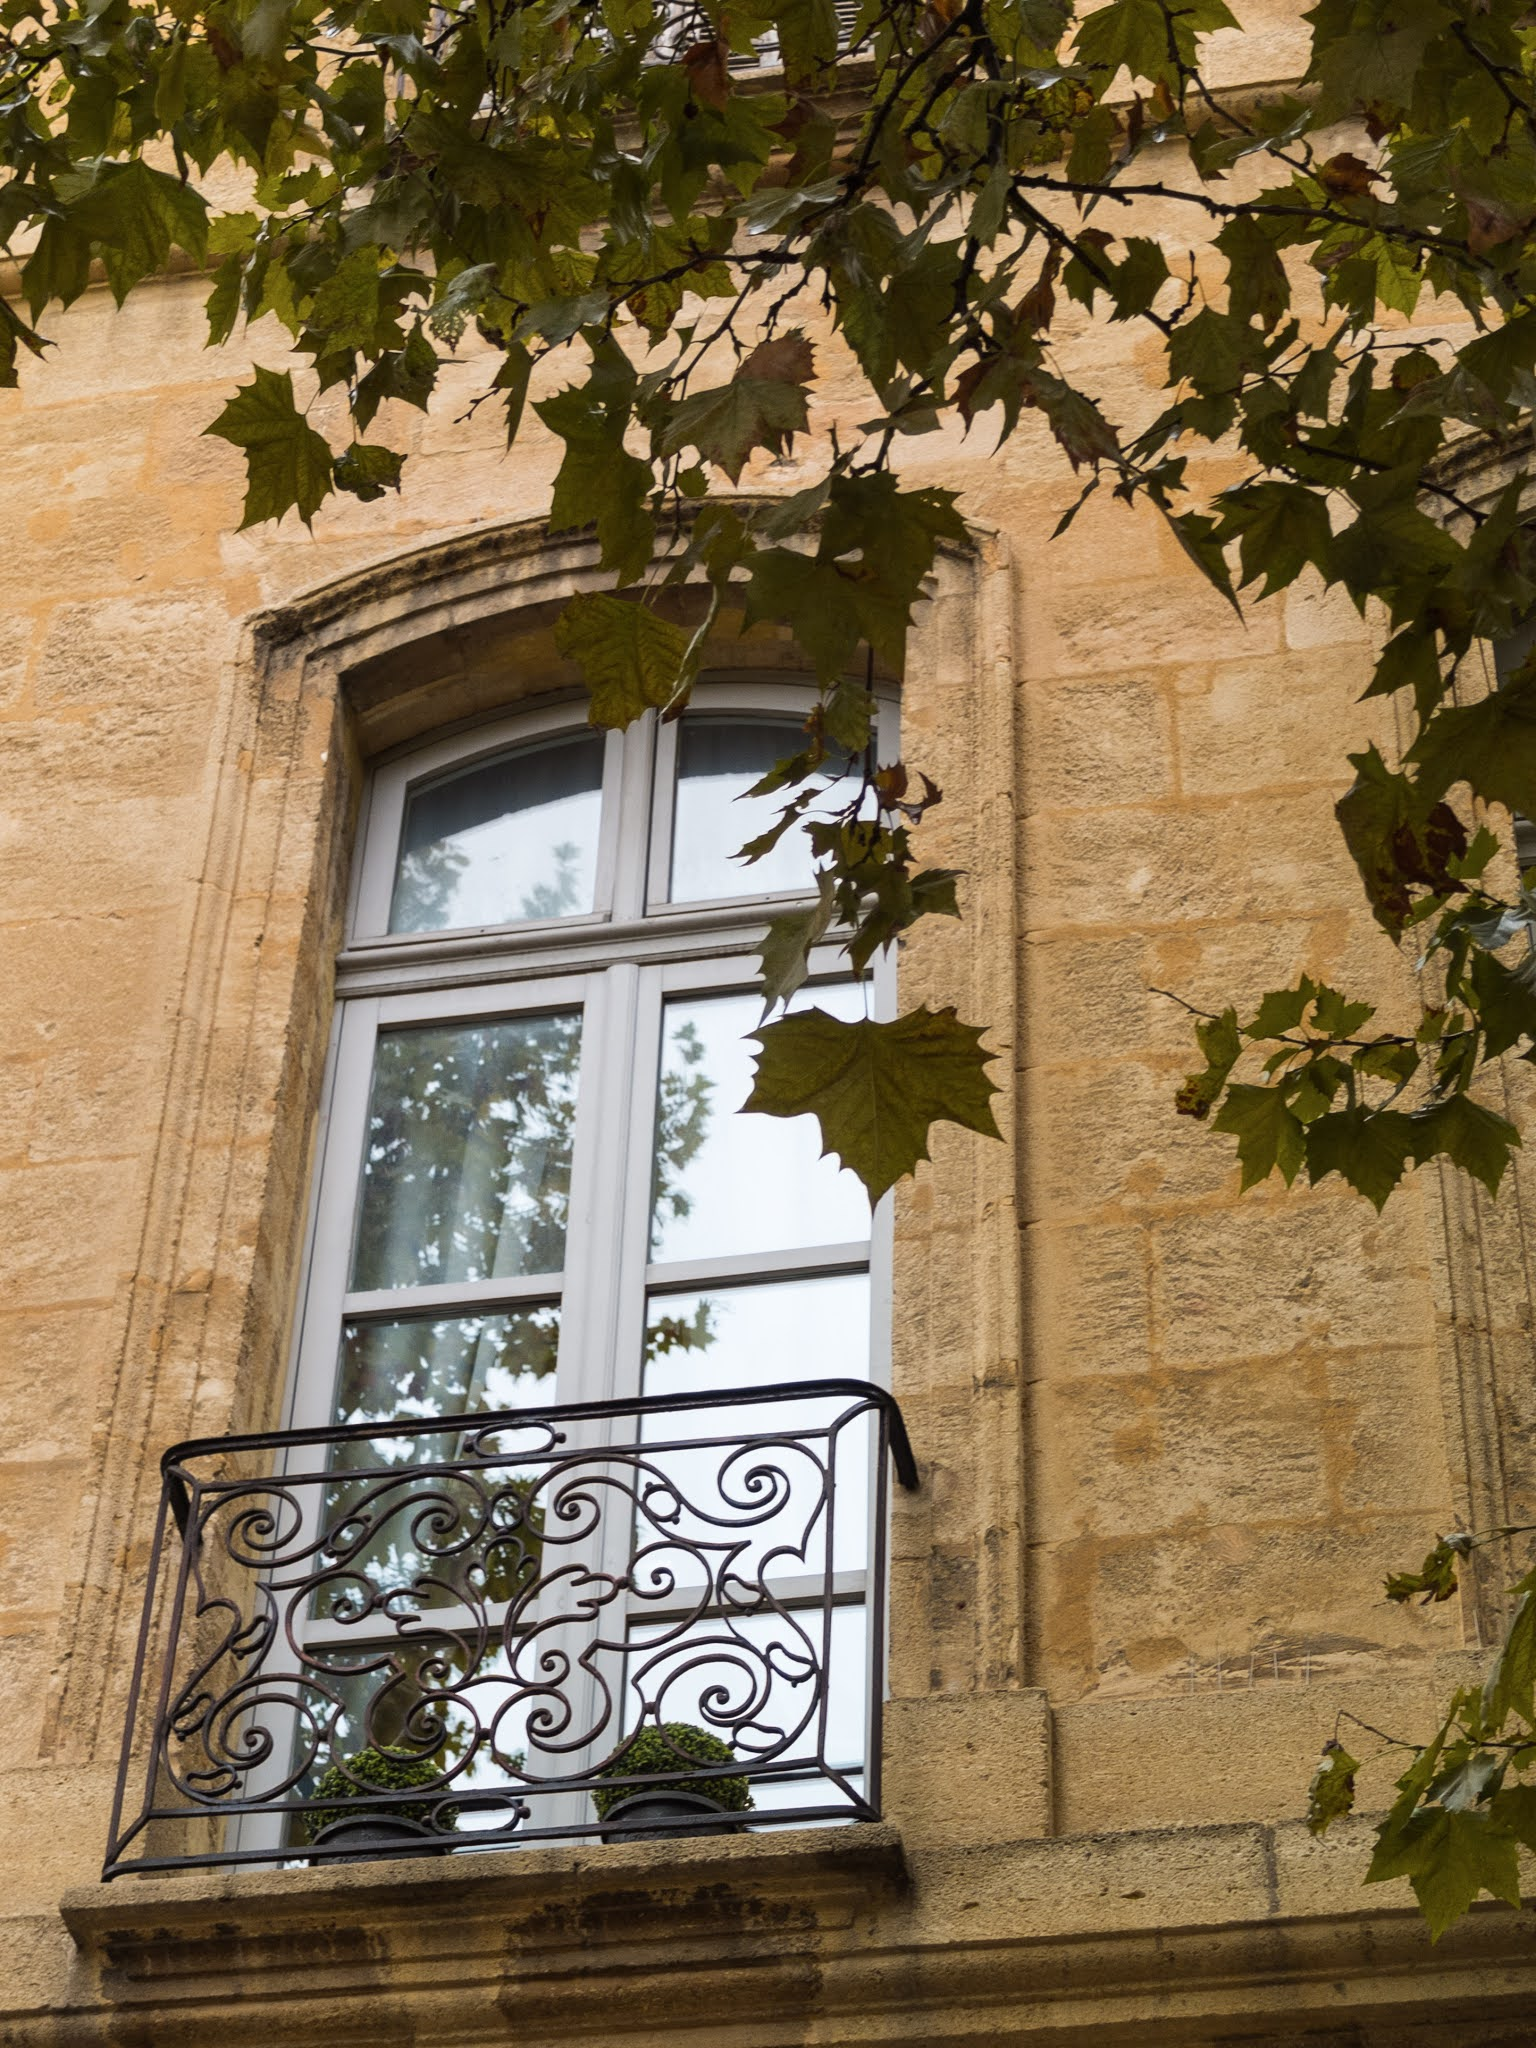 Tall window in Aix-en-Provence framed by a black railing and plane tree branches and leaves.